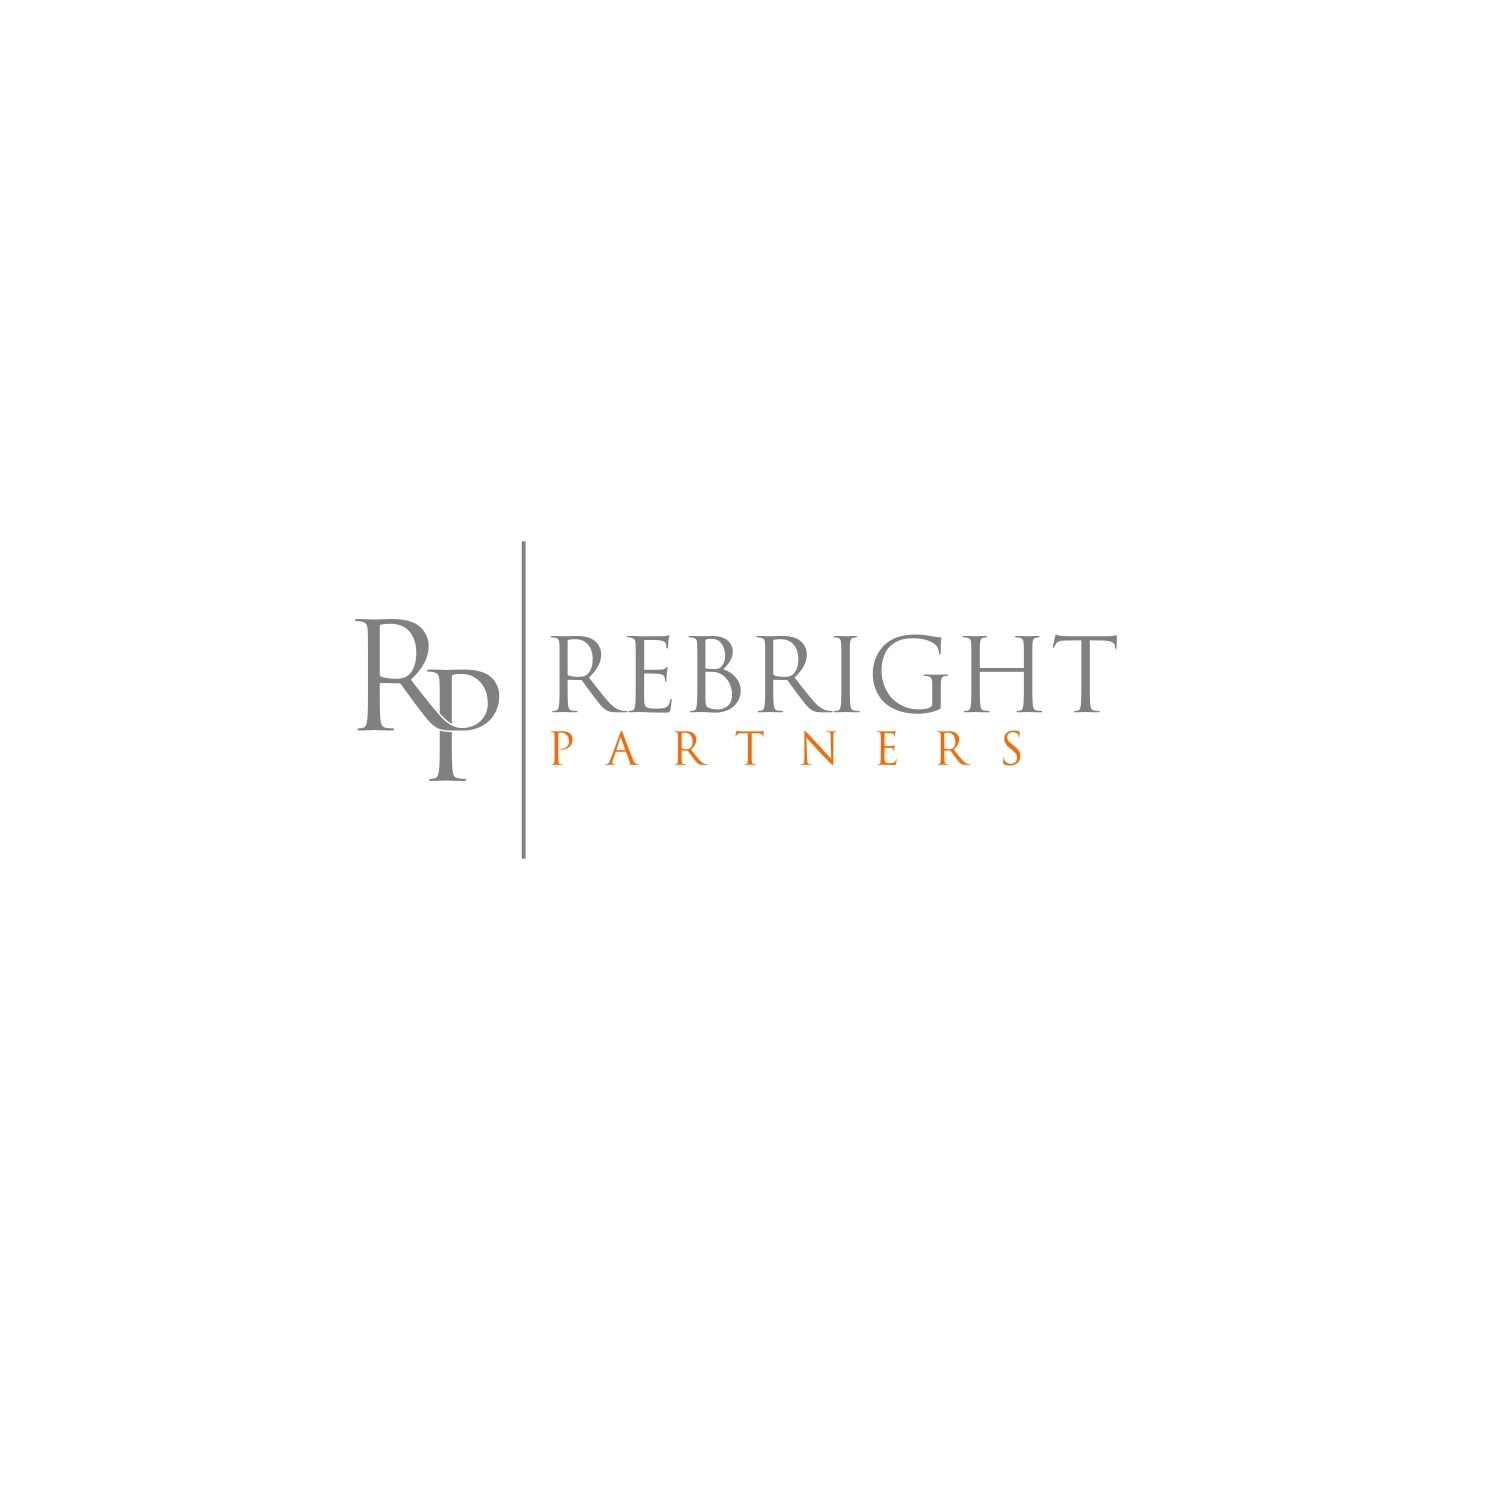 rebright_partners_large-2